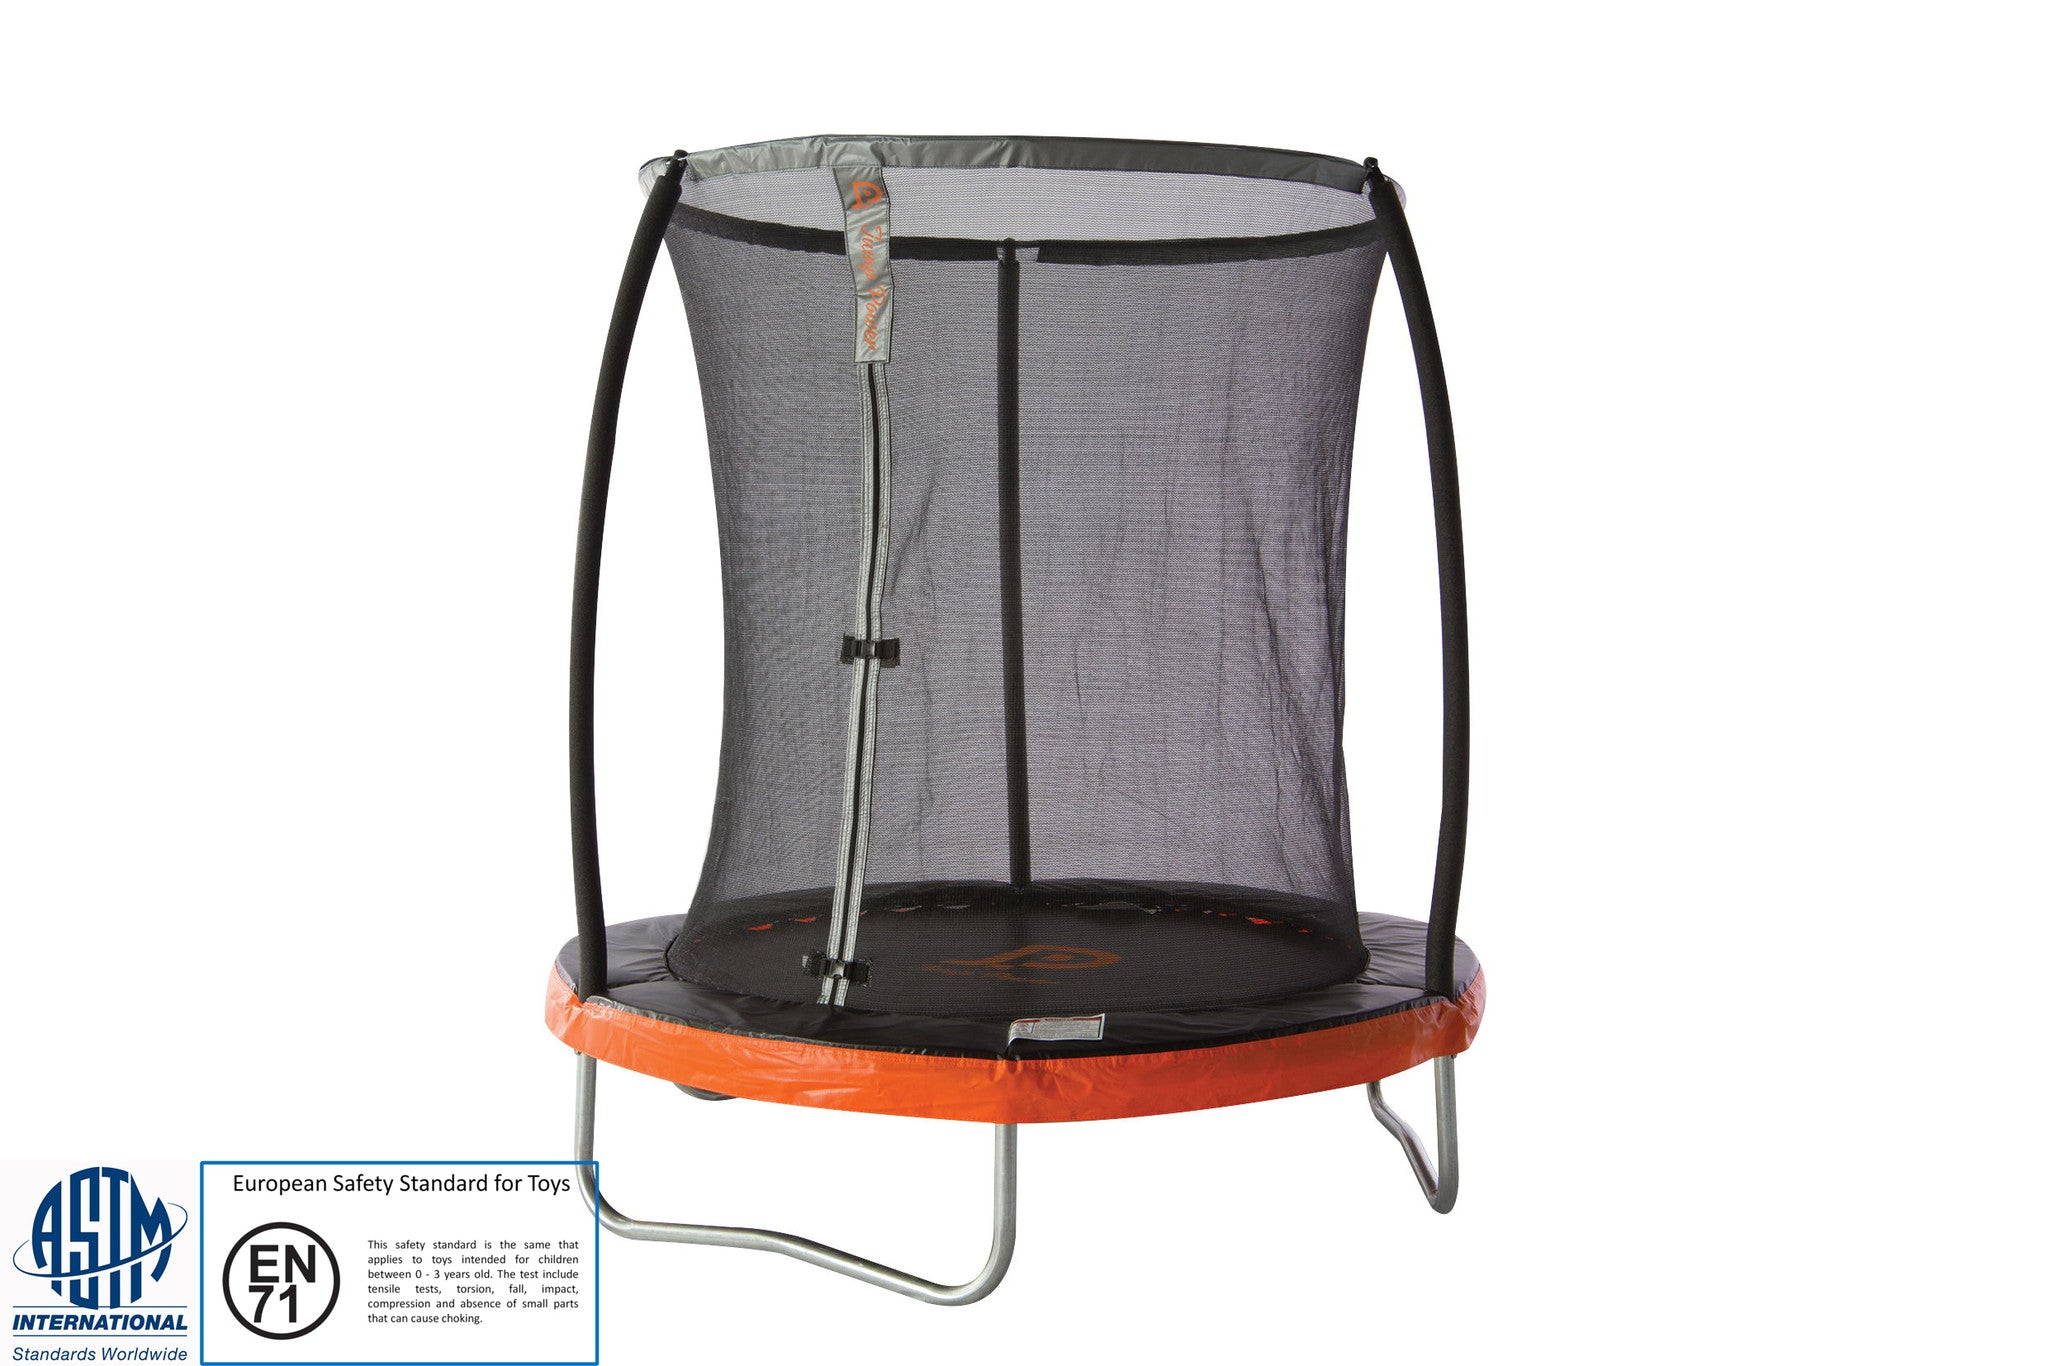 6ft. Trampoline & Safety Enclosure